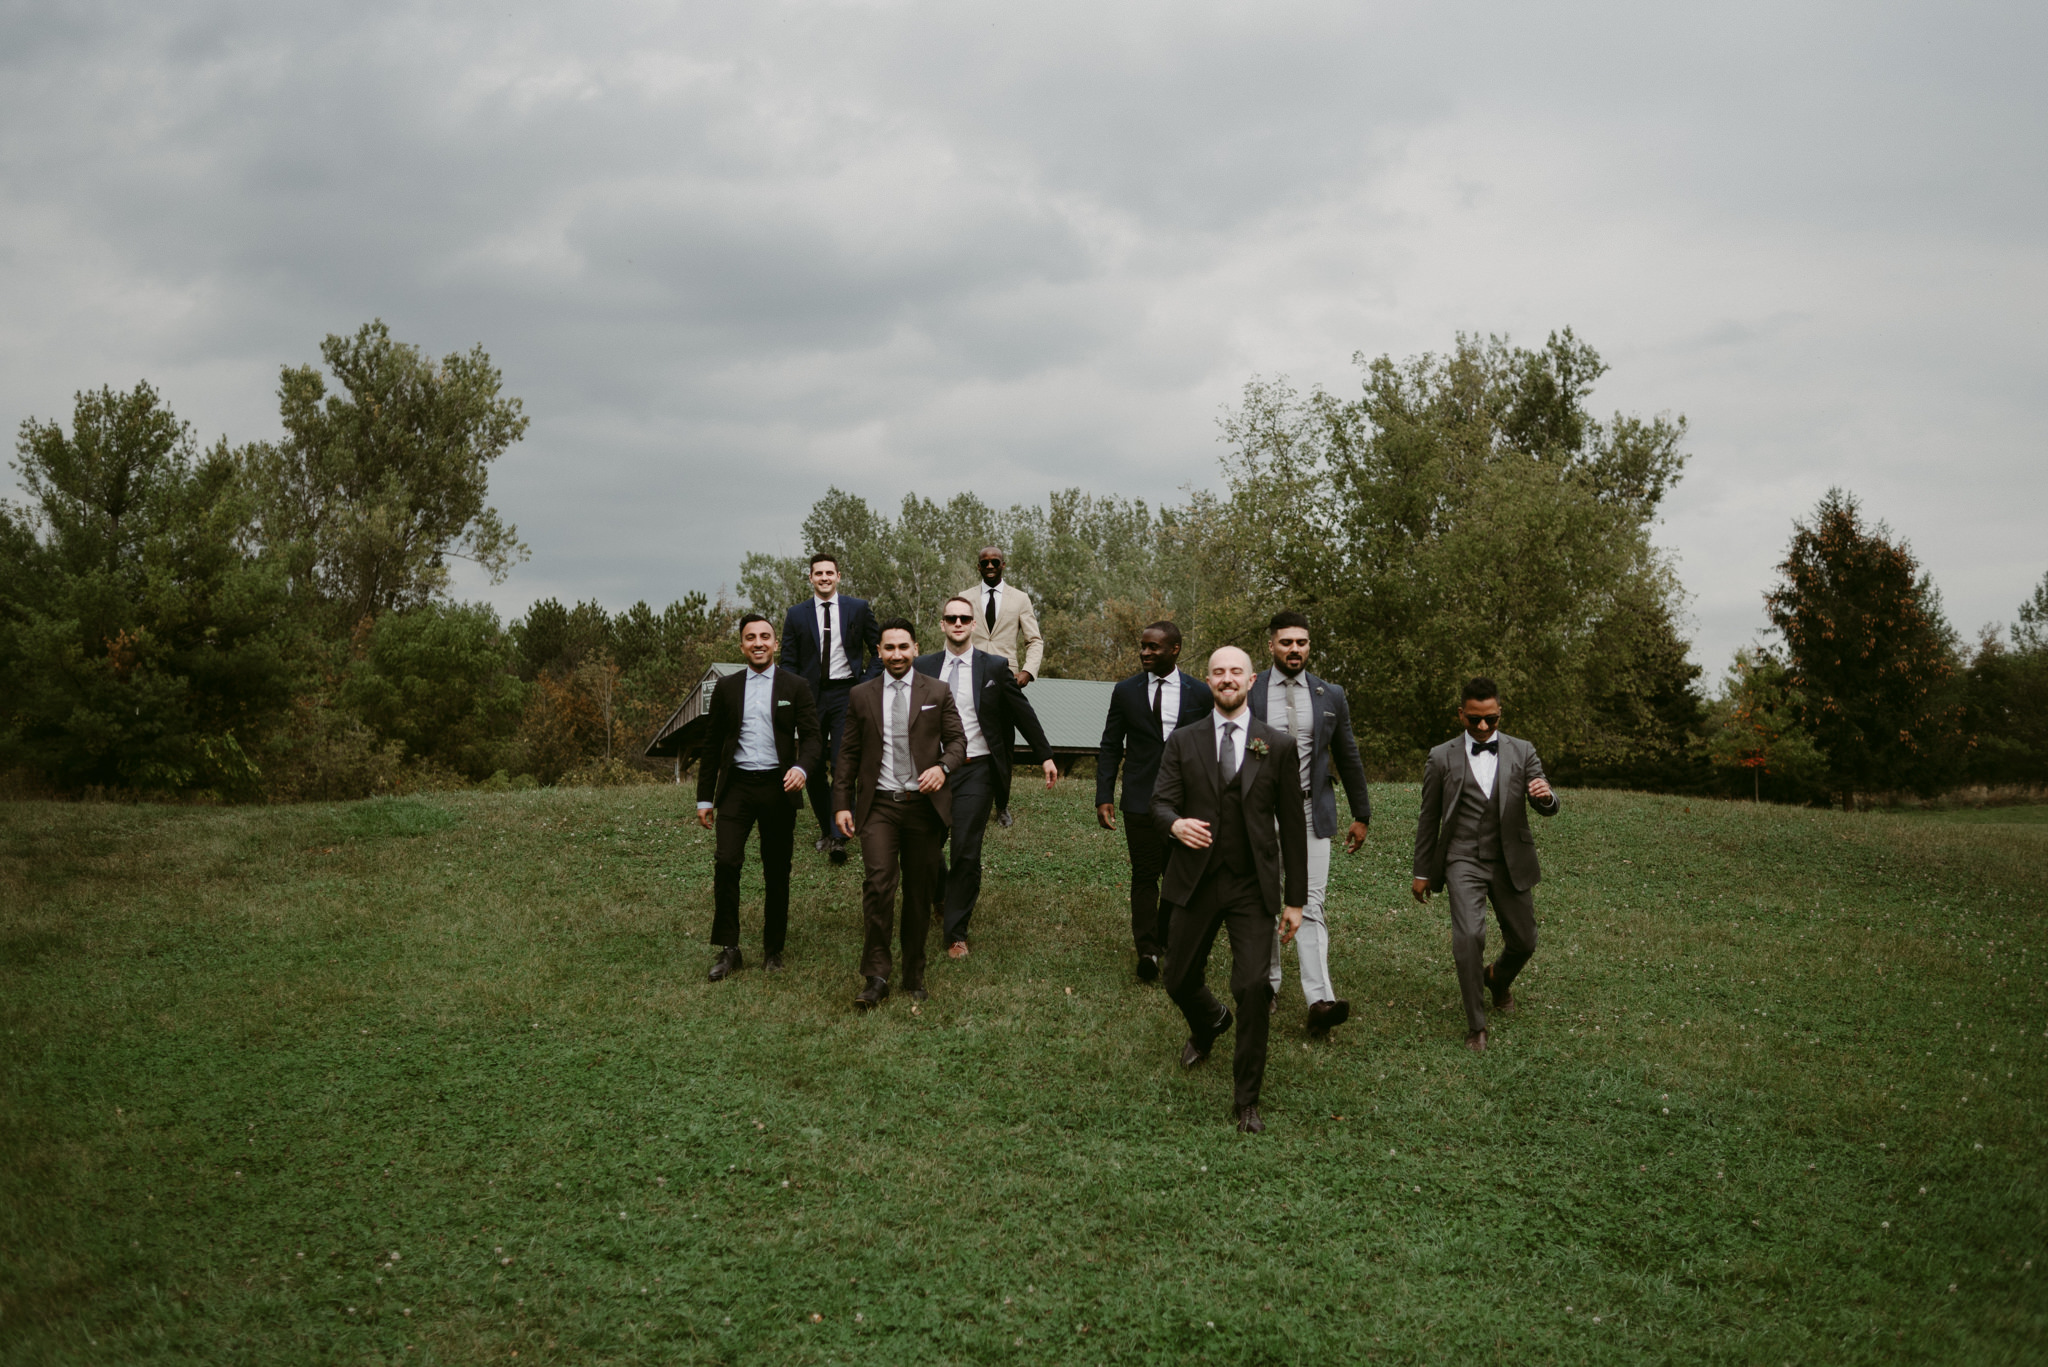 Groomsmen walking down hill